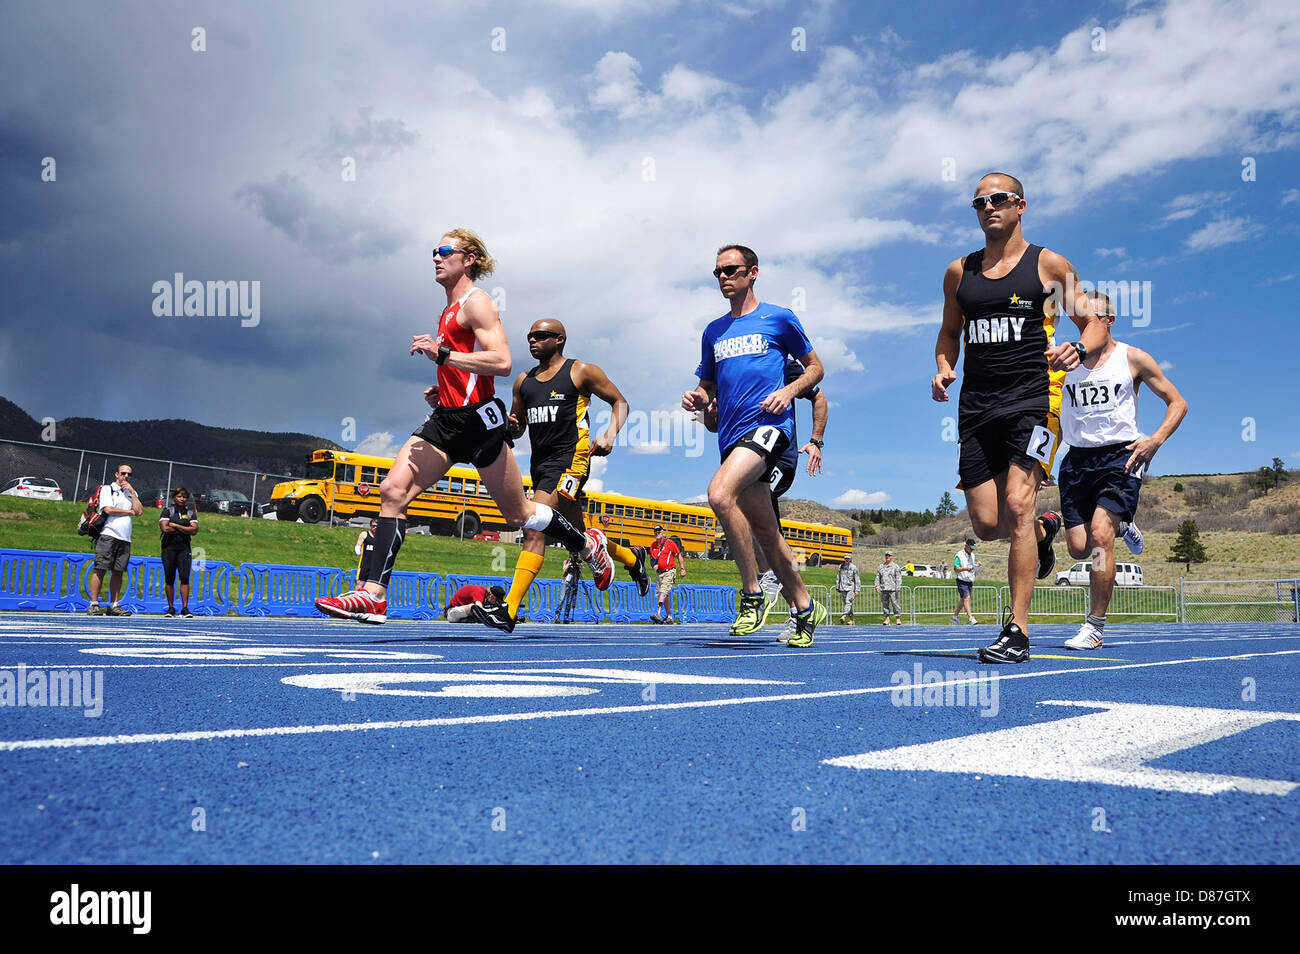 injured, ill or wounded service members and veterans athletes sprint from the starting line - Stock Image